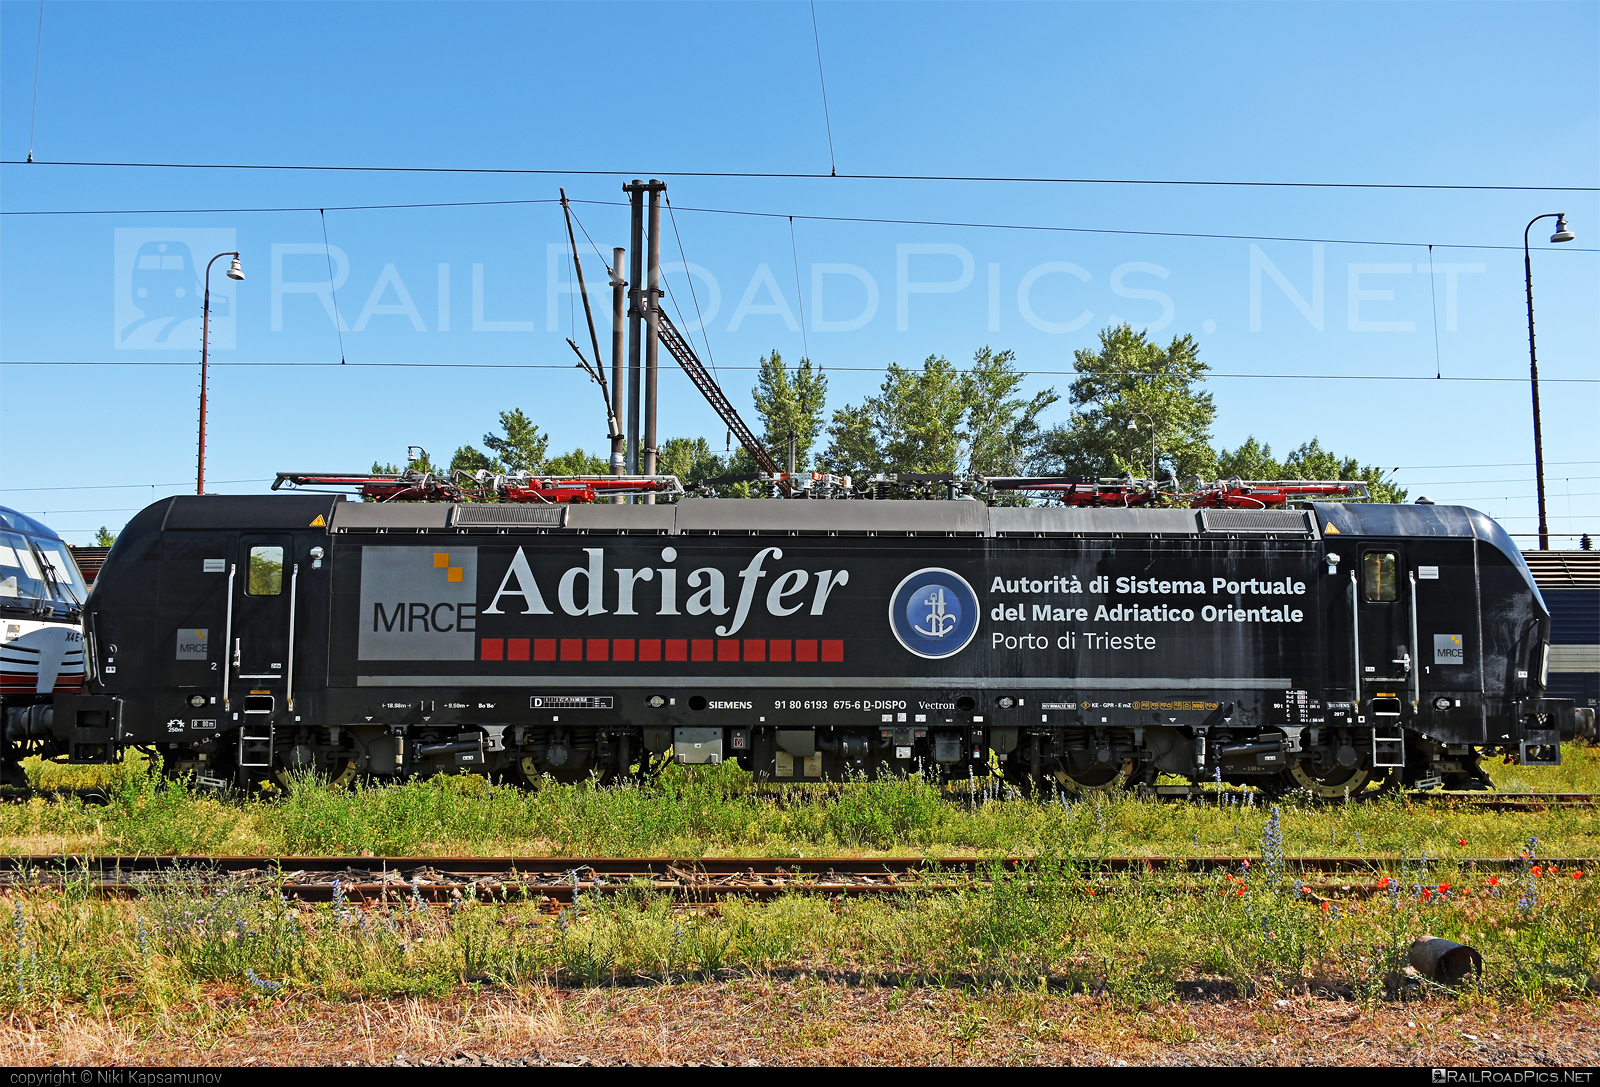 Siemens Vectron MS - 193 675-6 operated by ADRIAFER S.R.L. #adriafer #dispolok #mitsuirailcapitaleurope #mitsuirailcapitaleuropegmbh #mrce #siemens #siemensvectron #siemensvectronms #vectron #vectronms